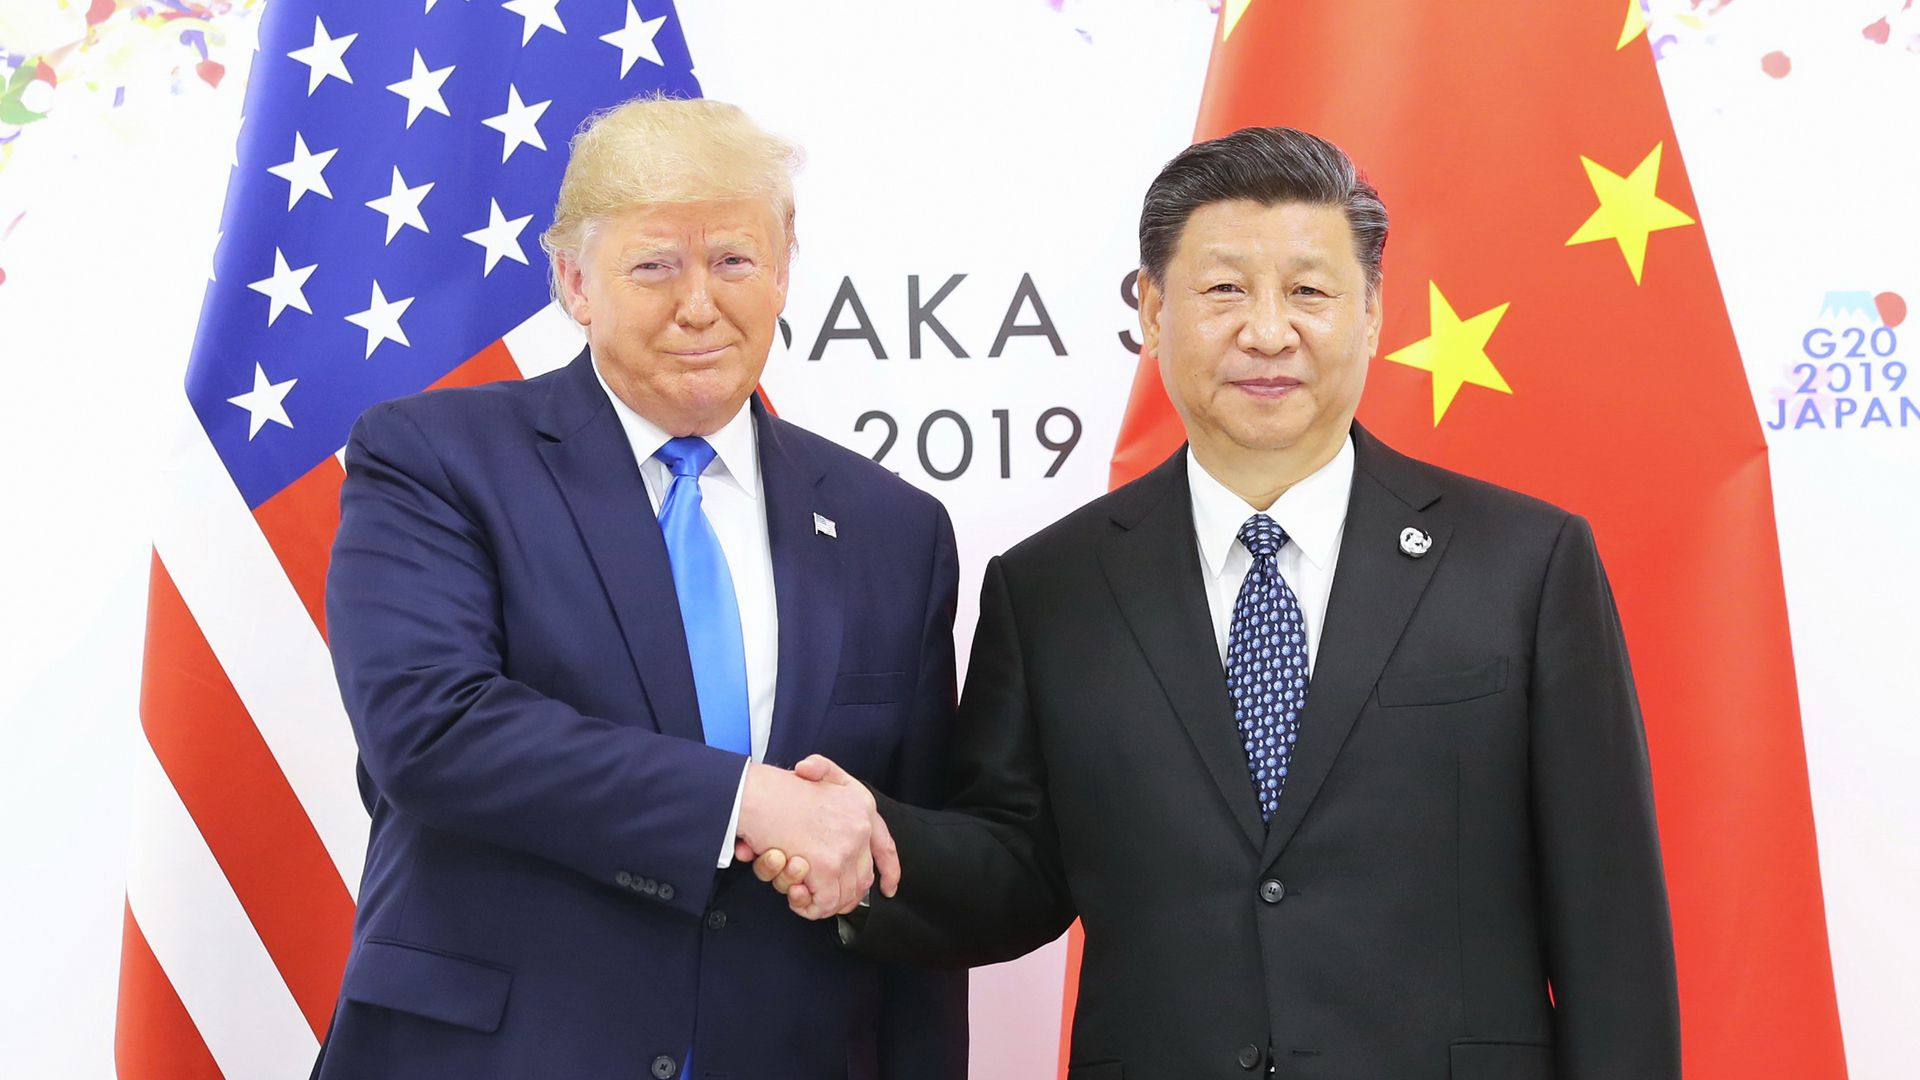 Photograph of Chinese President Xi Jinping meeting with U.S. President Donald Trump in Osaka, Japan, on June 29, 2019